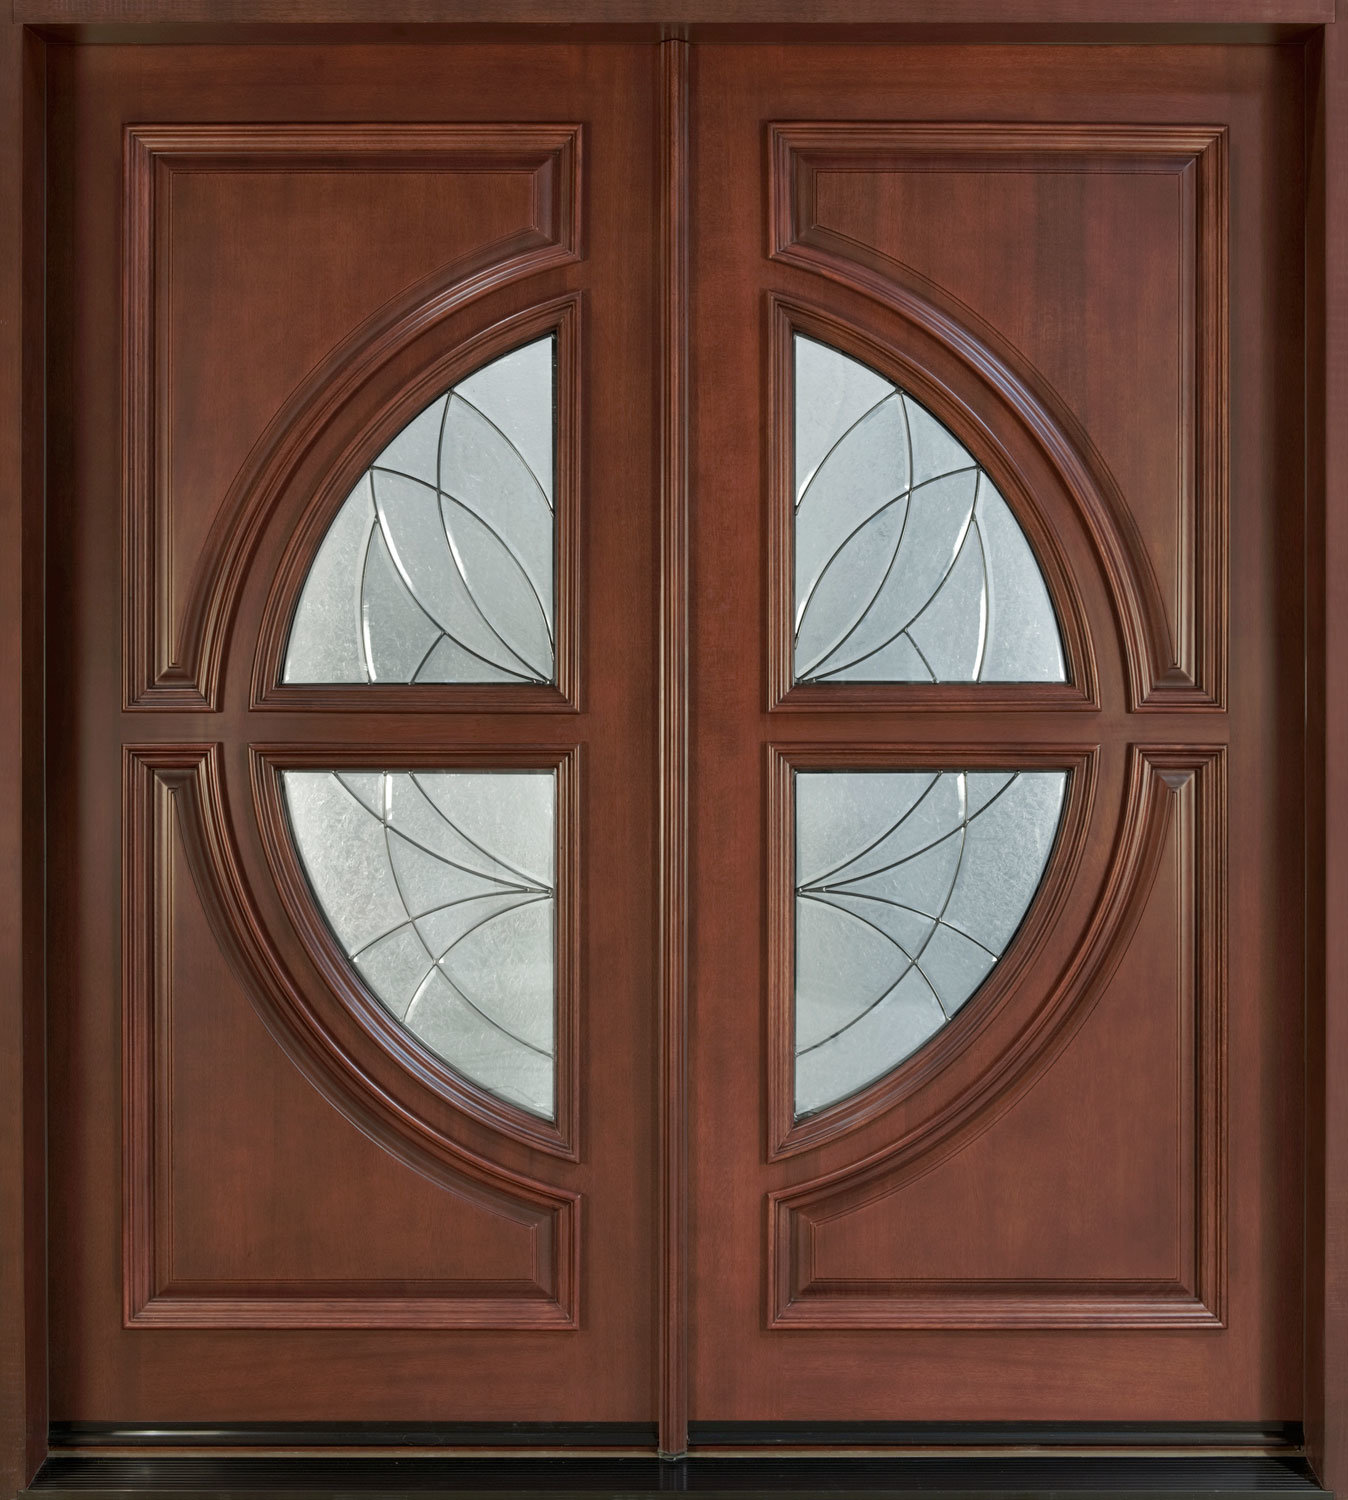 Villa main door solid wood security villa double leaf door design - China Solid Timber Door Villa Door Double Sashed Wooden Door With Glass Solid Wood Door China Double Solid Door Timber Wooden Door